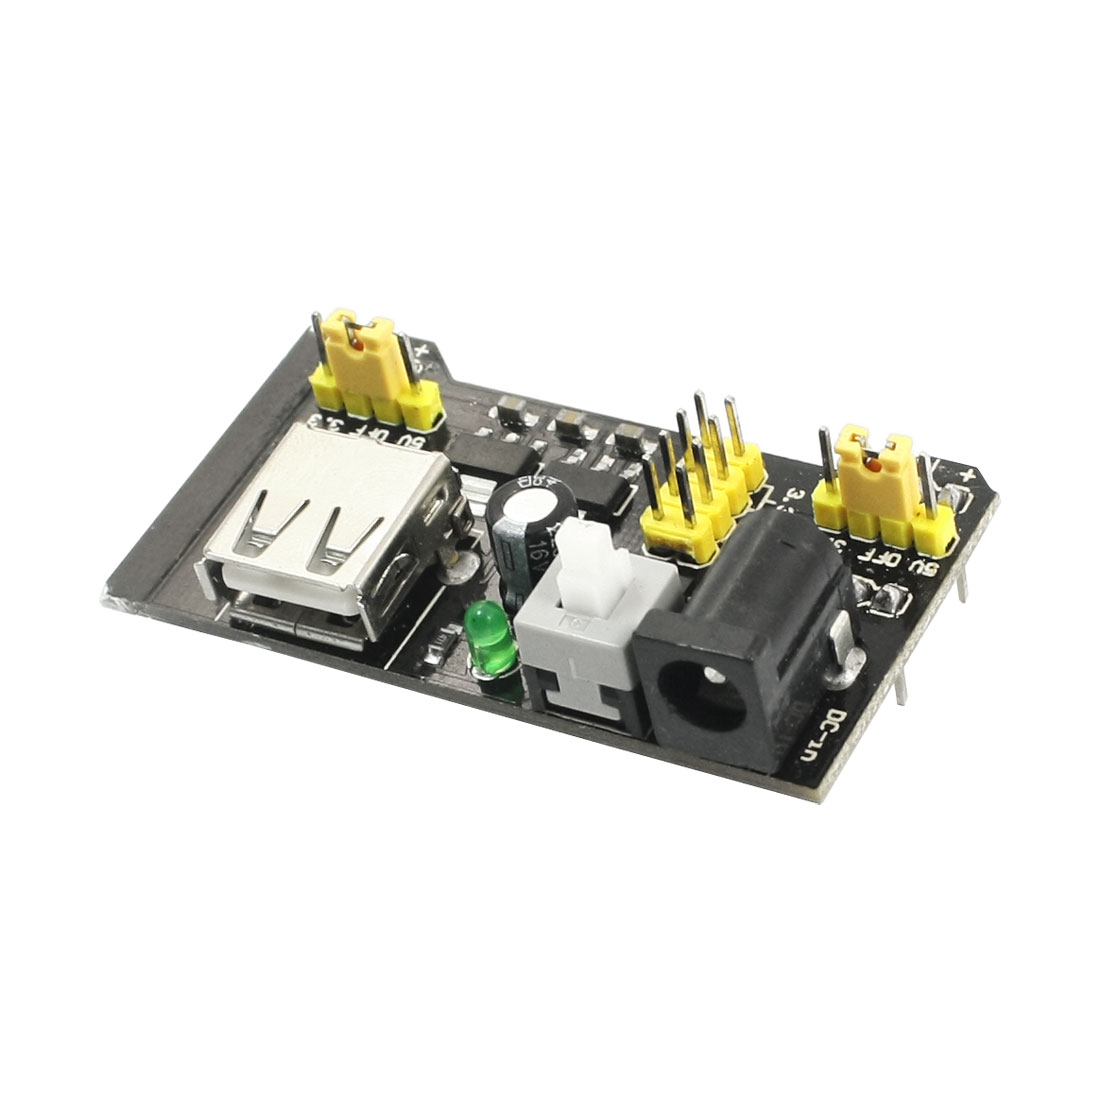 DC 6.5-12V to 3.3V/5V MB102 PCB Board Breadboard Power Supply Module